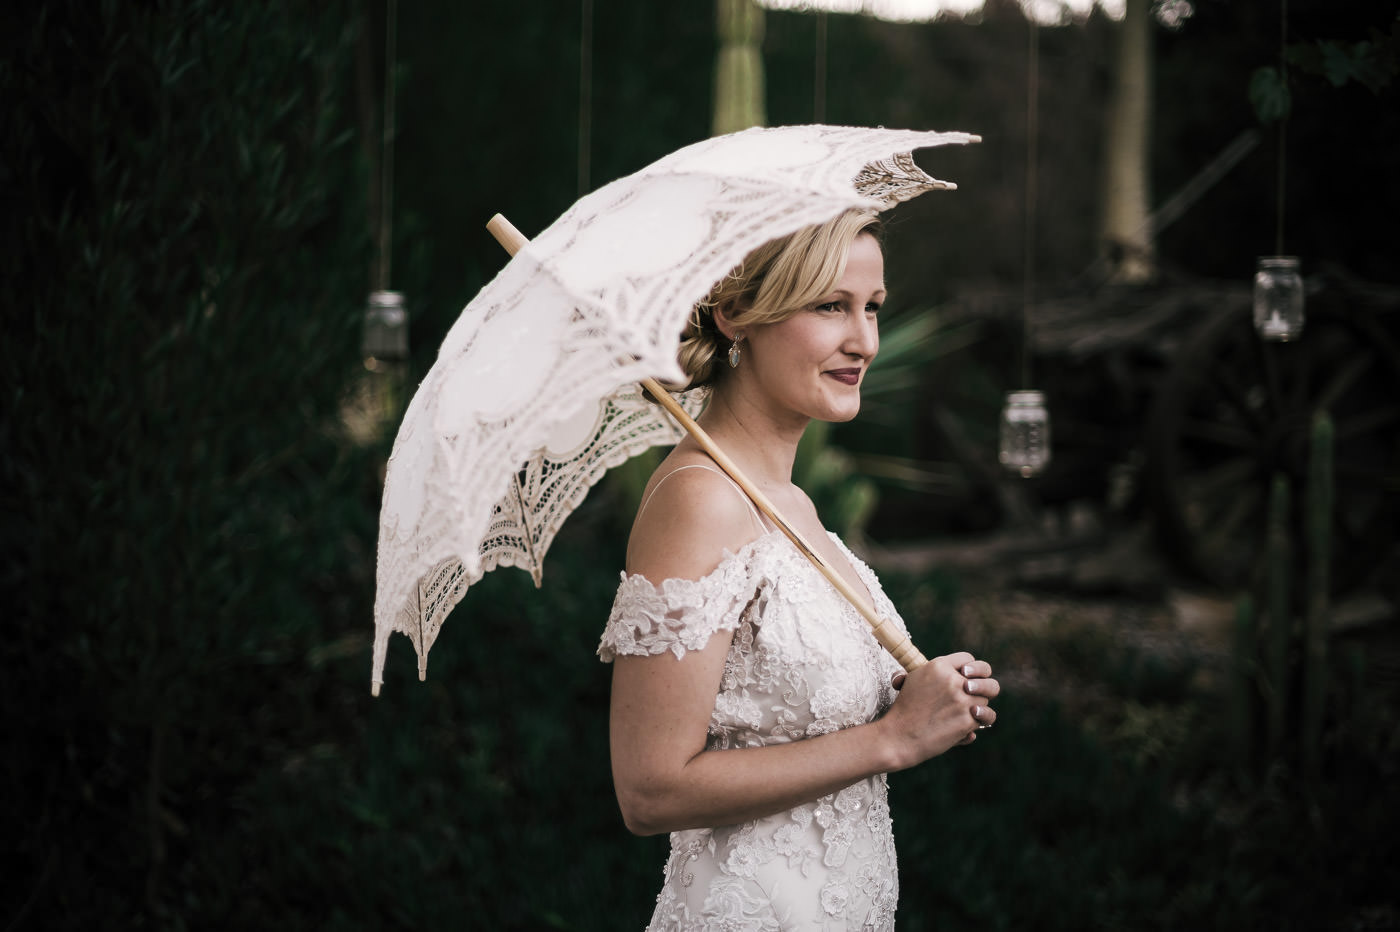 stunning wedding photography of the bride at this whispering oaks terrace wedding in temecula california